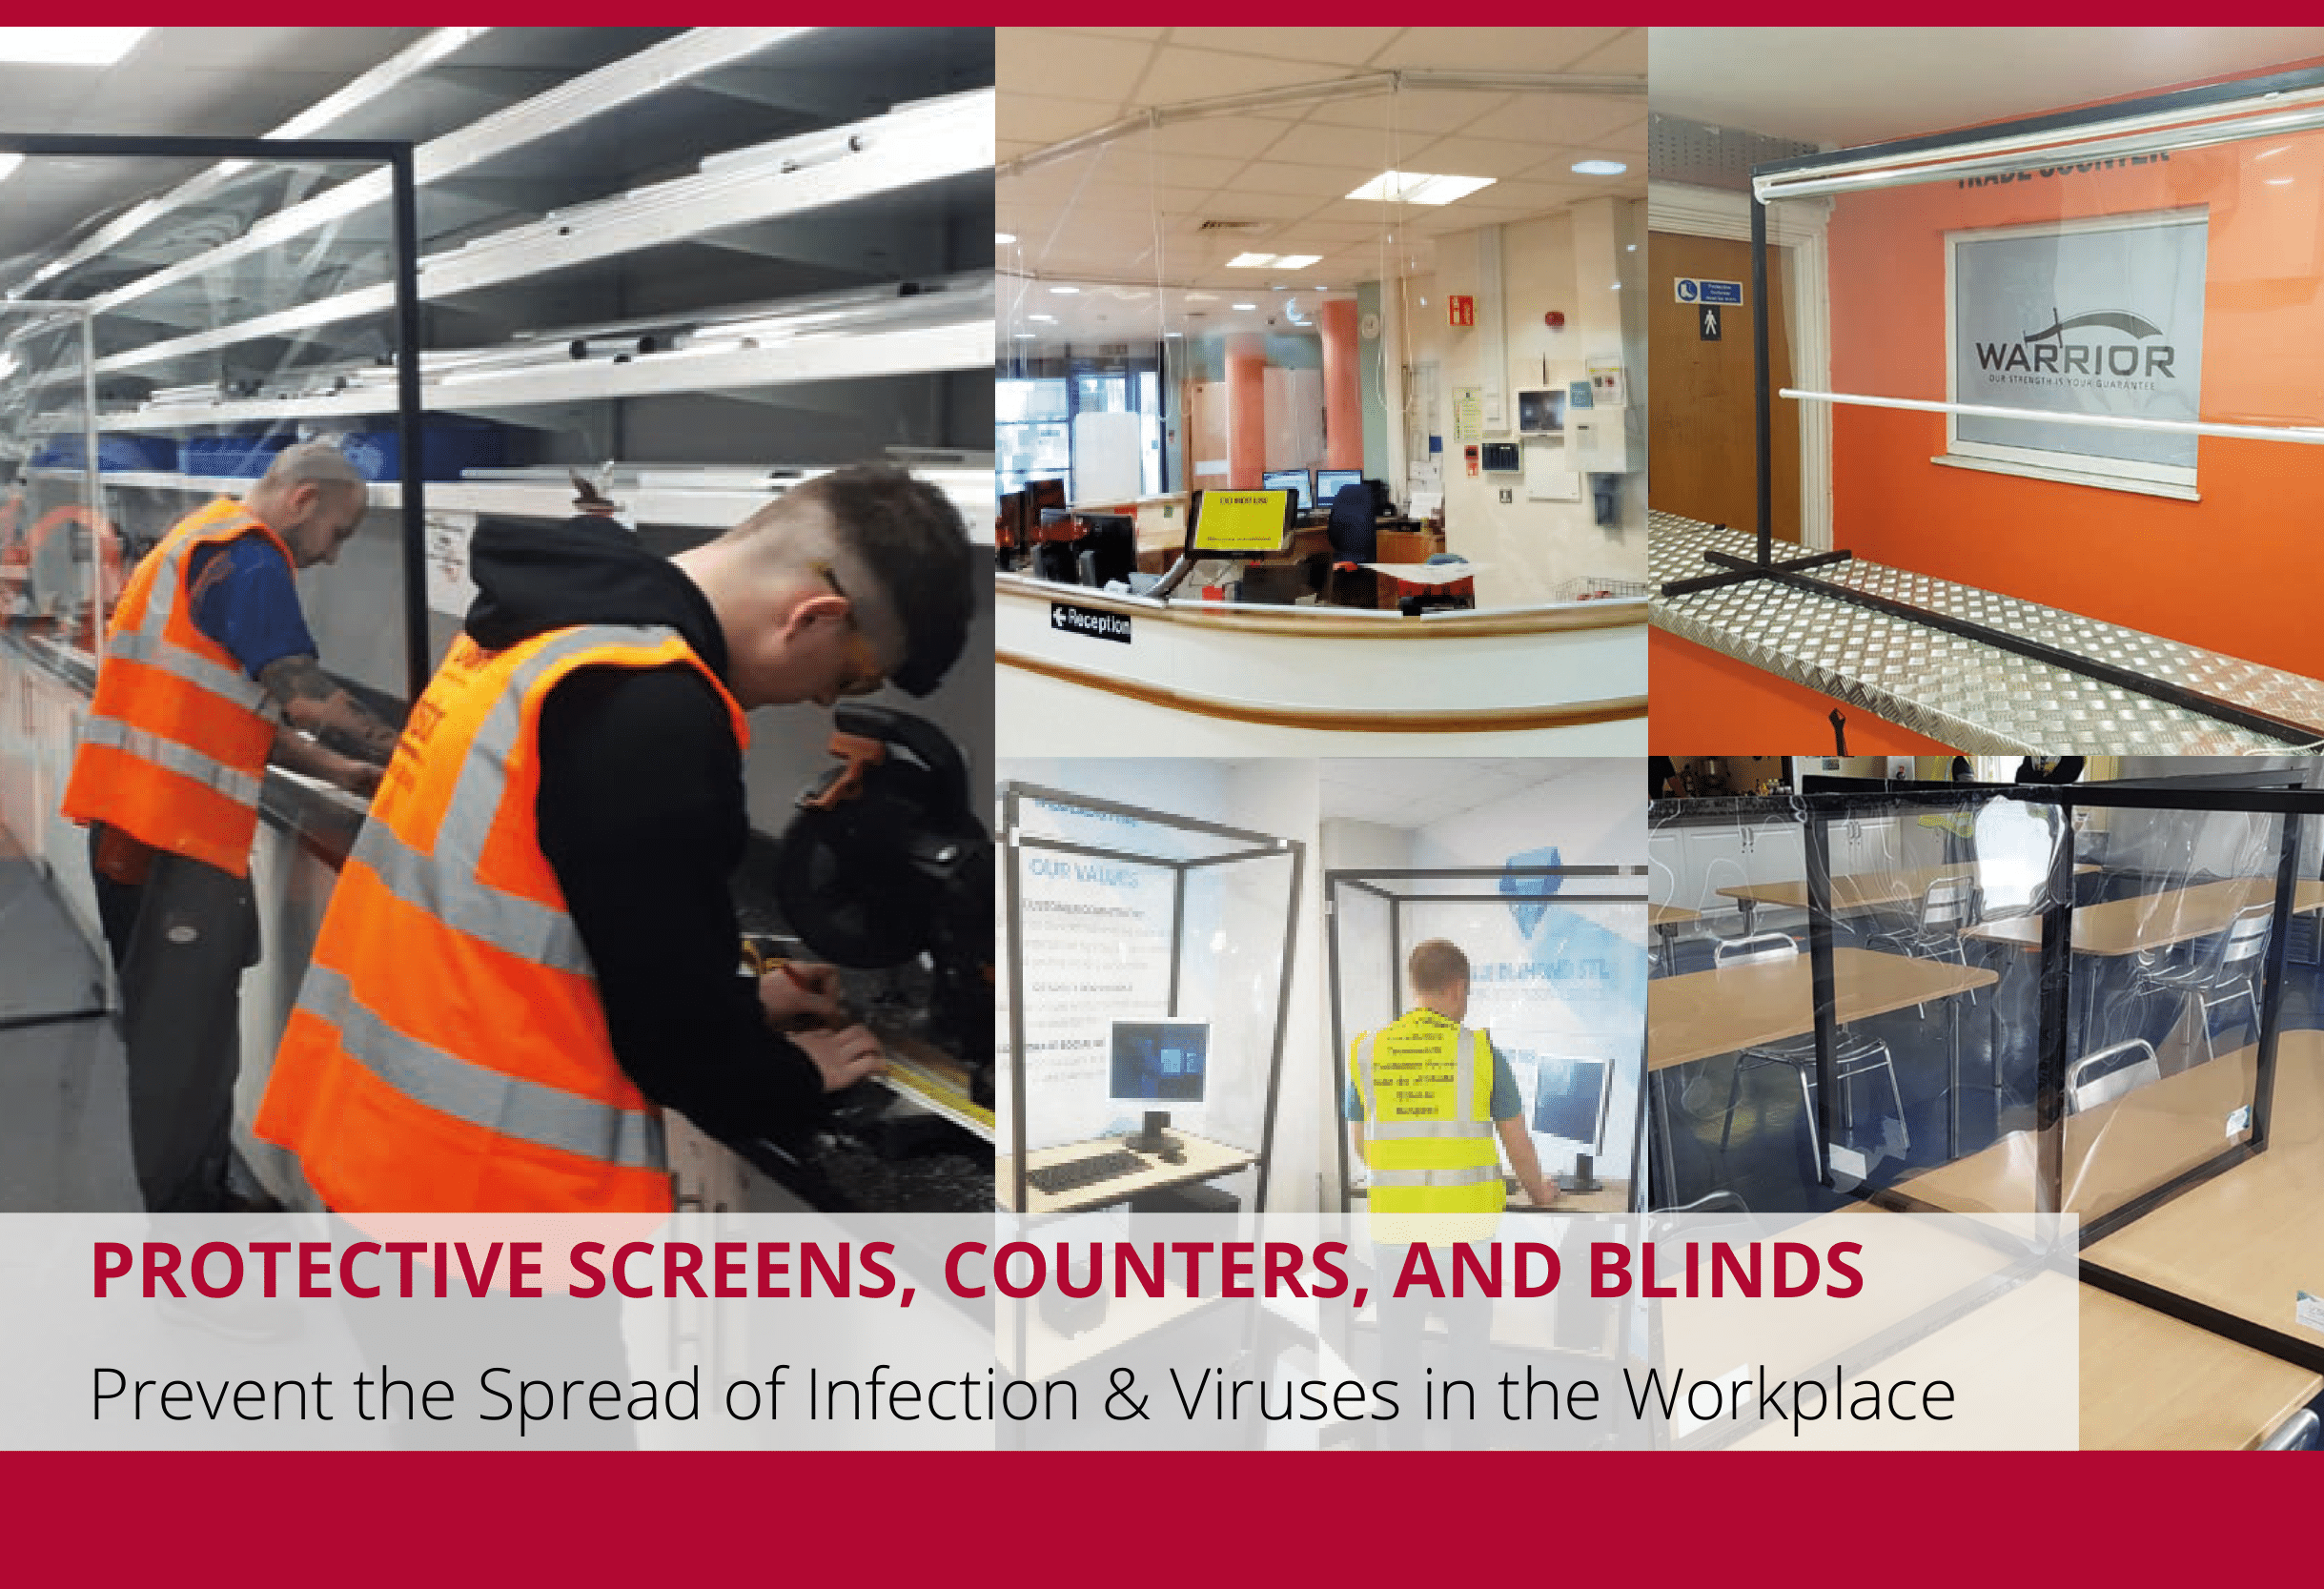 Stay Safe In The Workplace With Protective Screens, Counters & Blinds